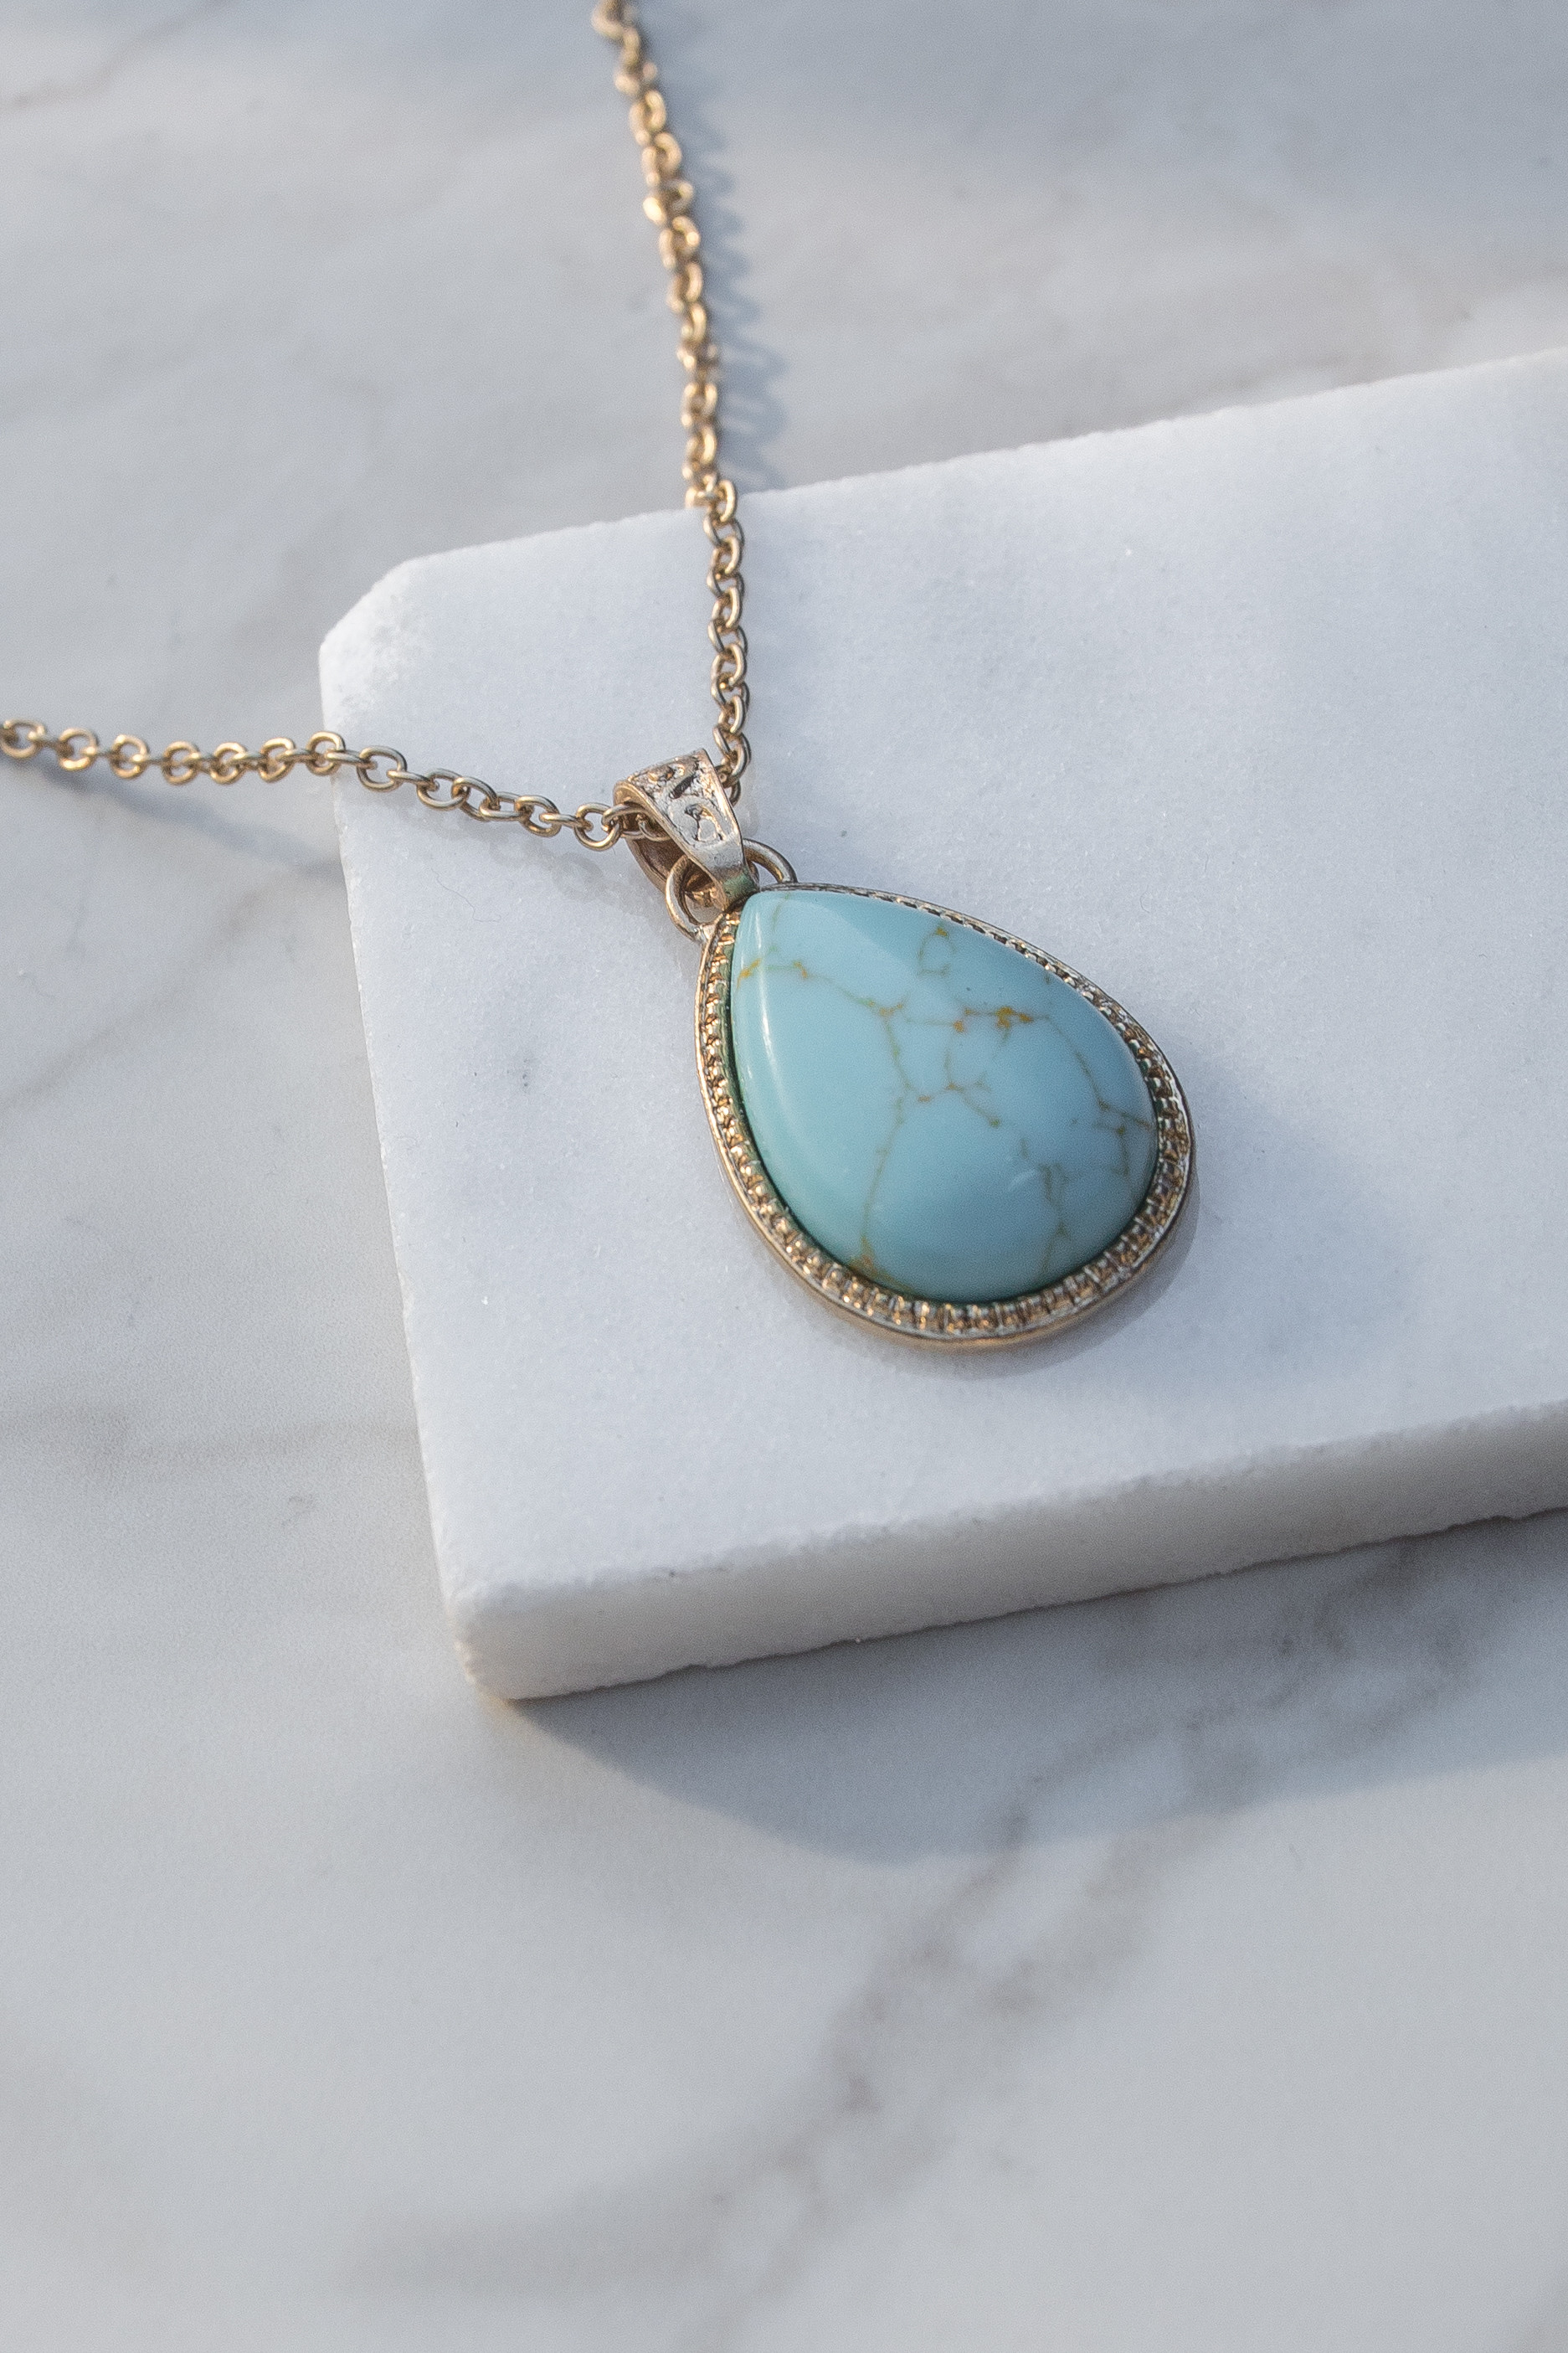 Gold Chain Necklace with Turquoise Teardrop Pendant